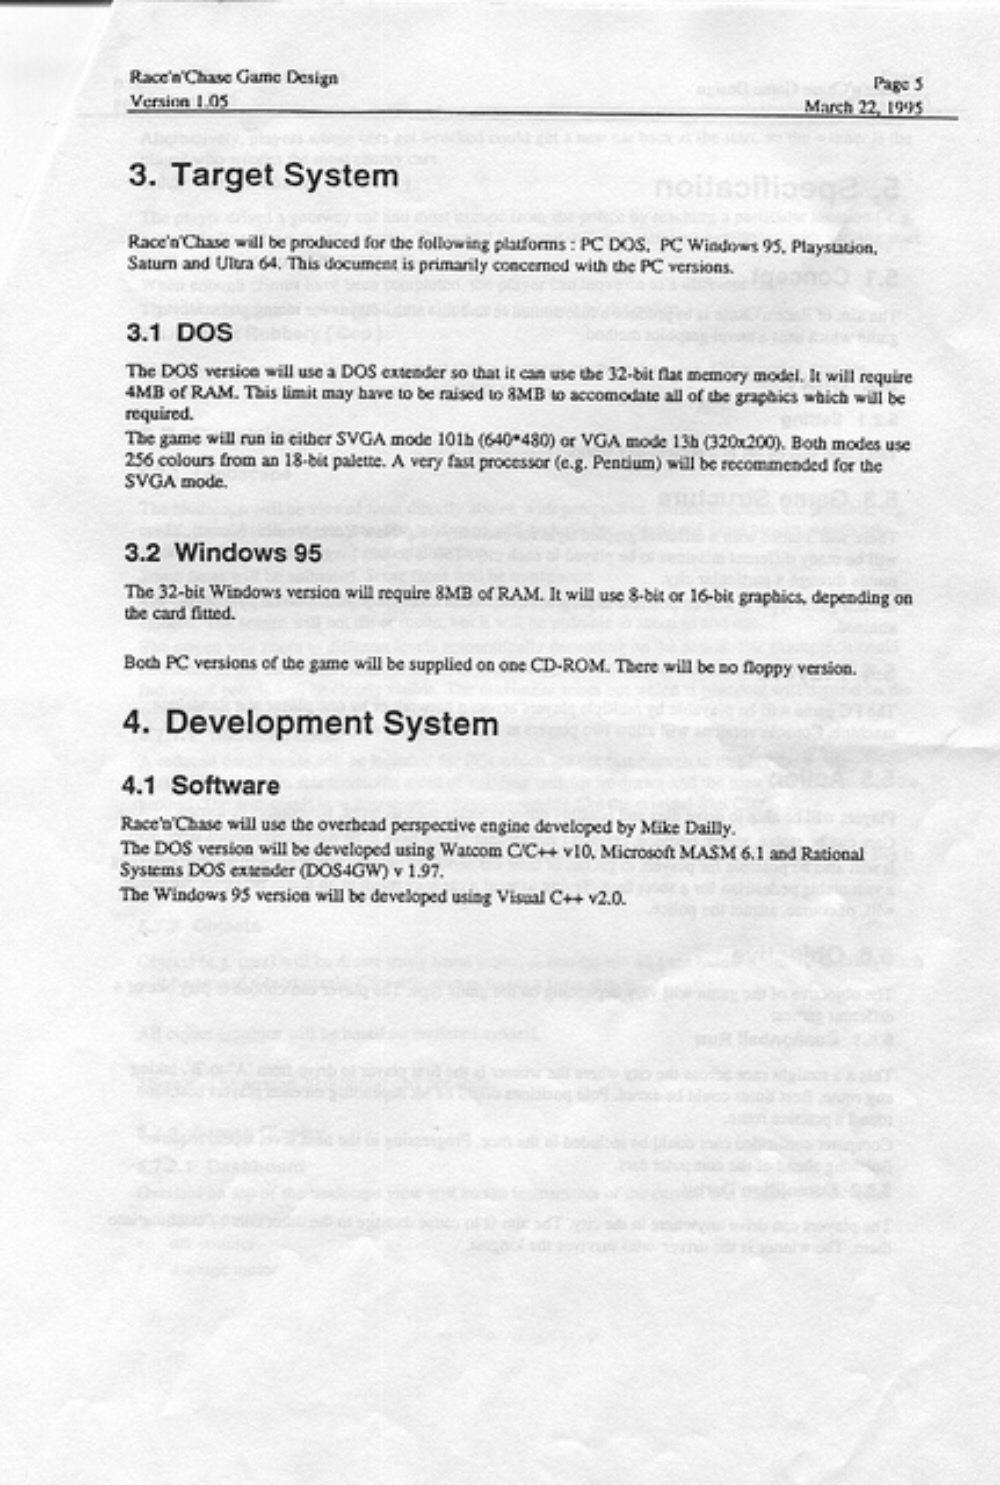 Grand Theft Auto 1 Race N Chase Design Document Released Video Games Blogger,Elements And Principles Of Design Matrix Worksheet